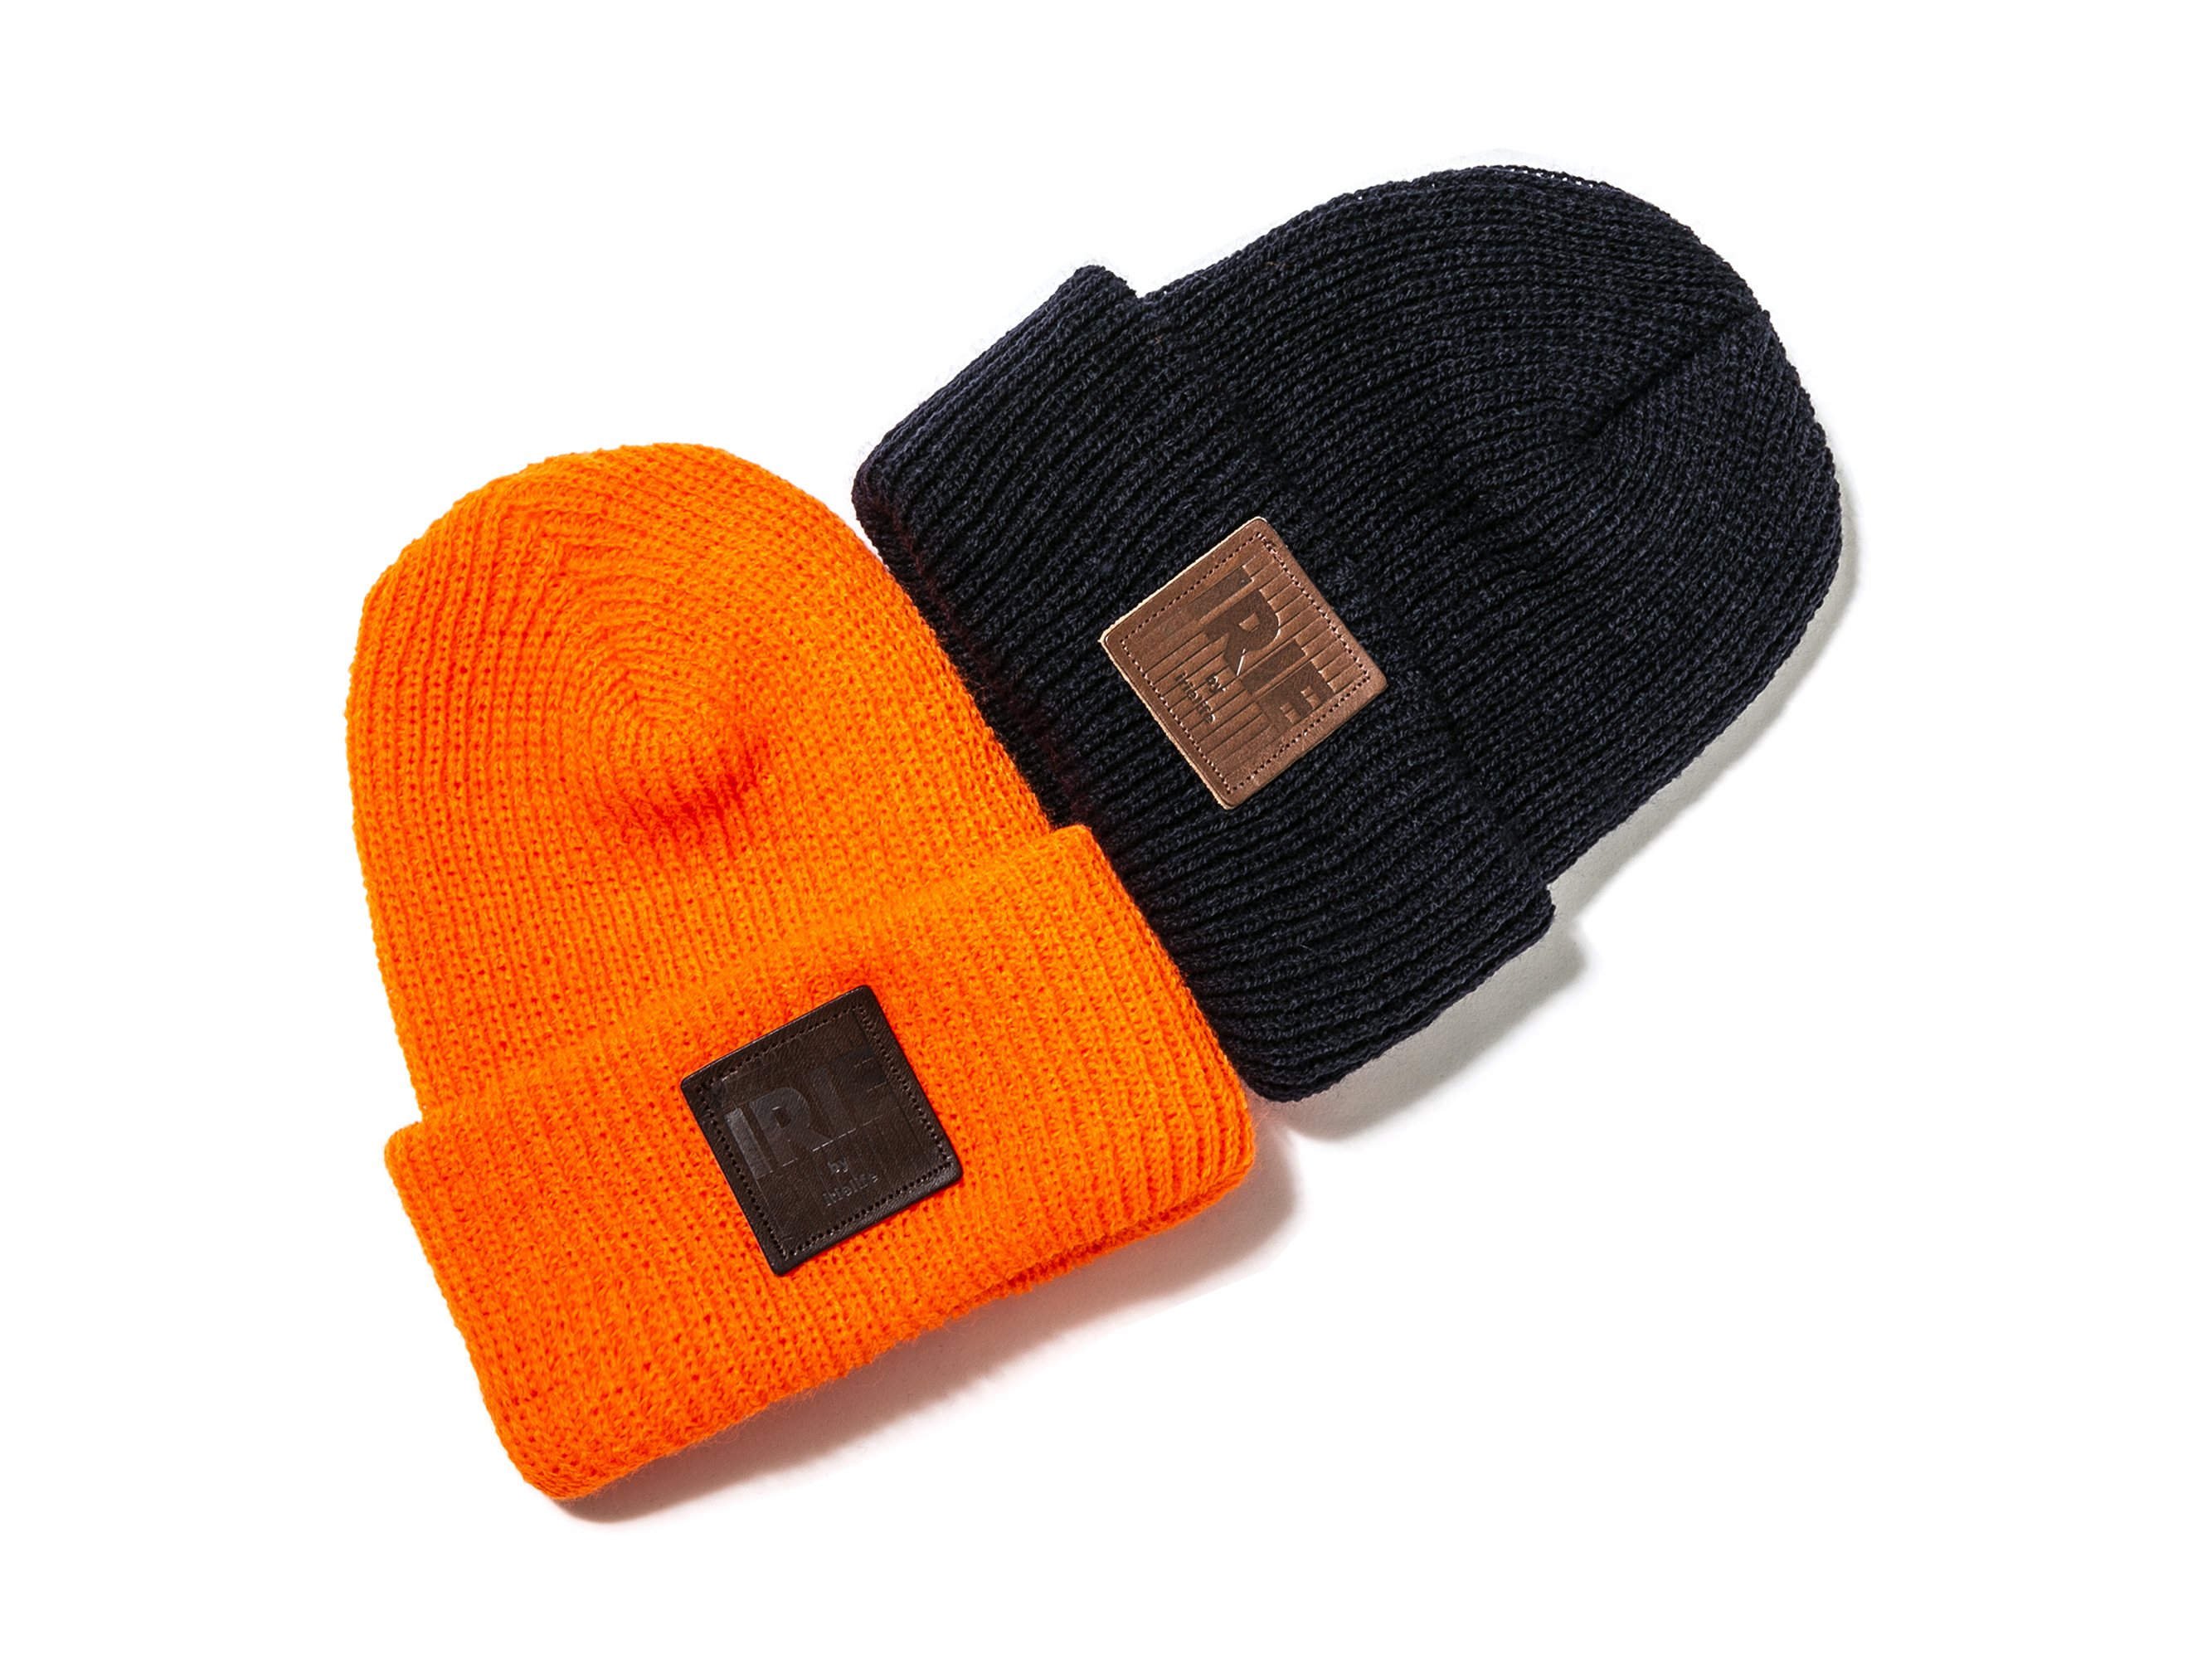 LEATHER PATCH KNIT CAP - IRIE by irielife